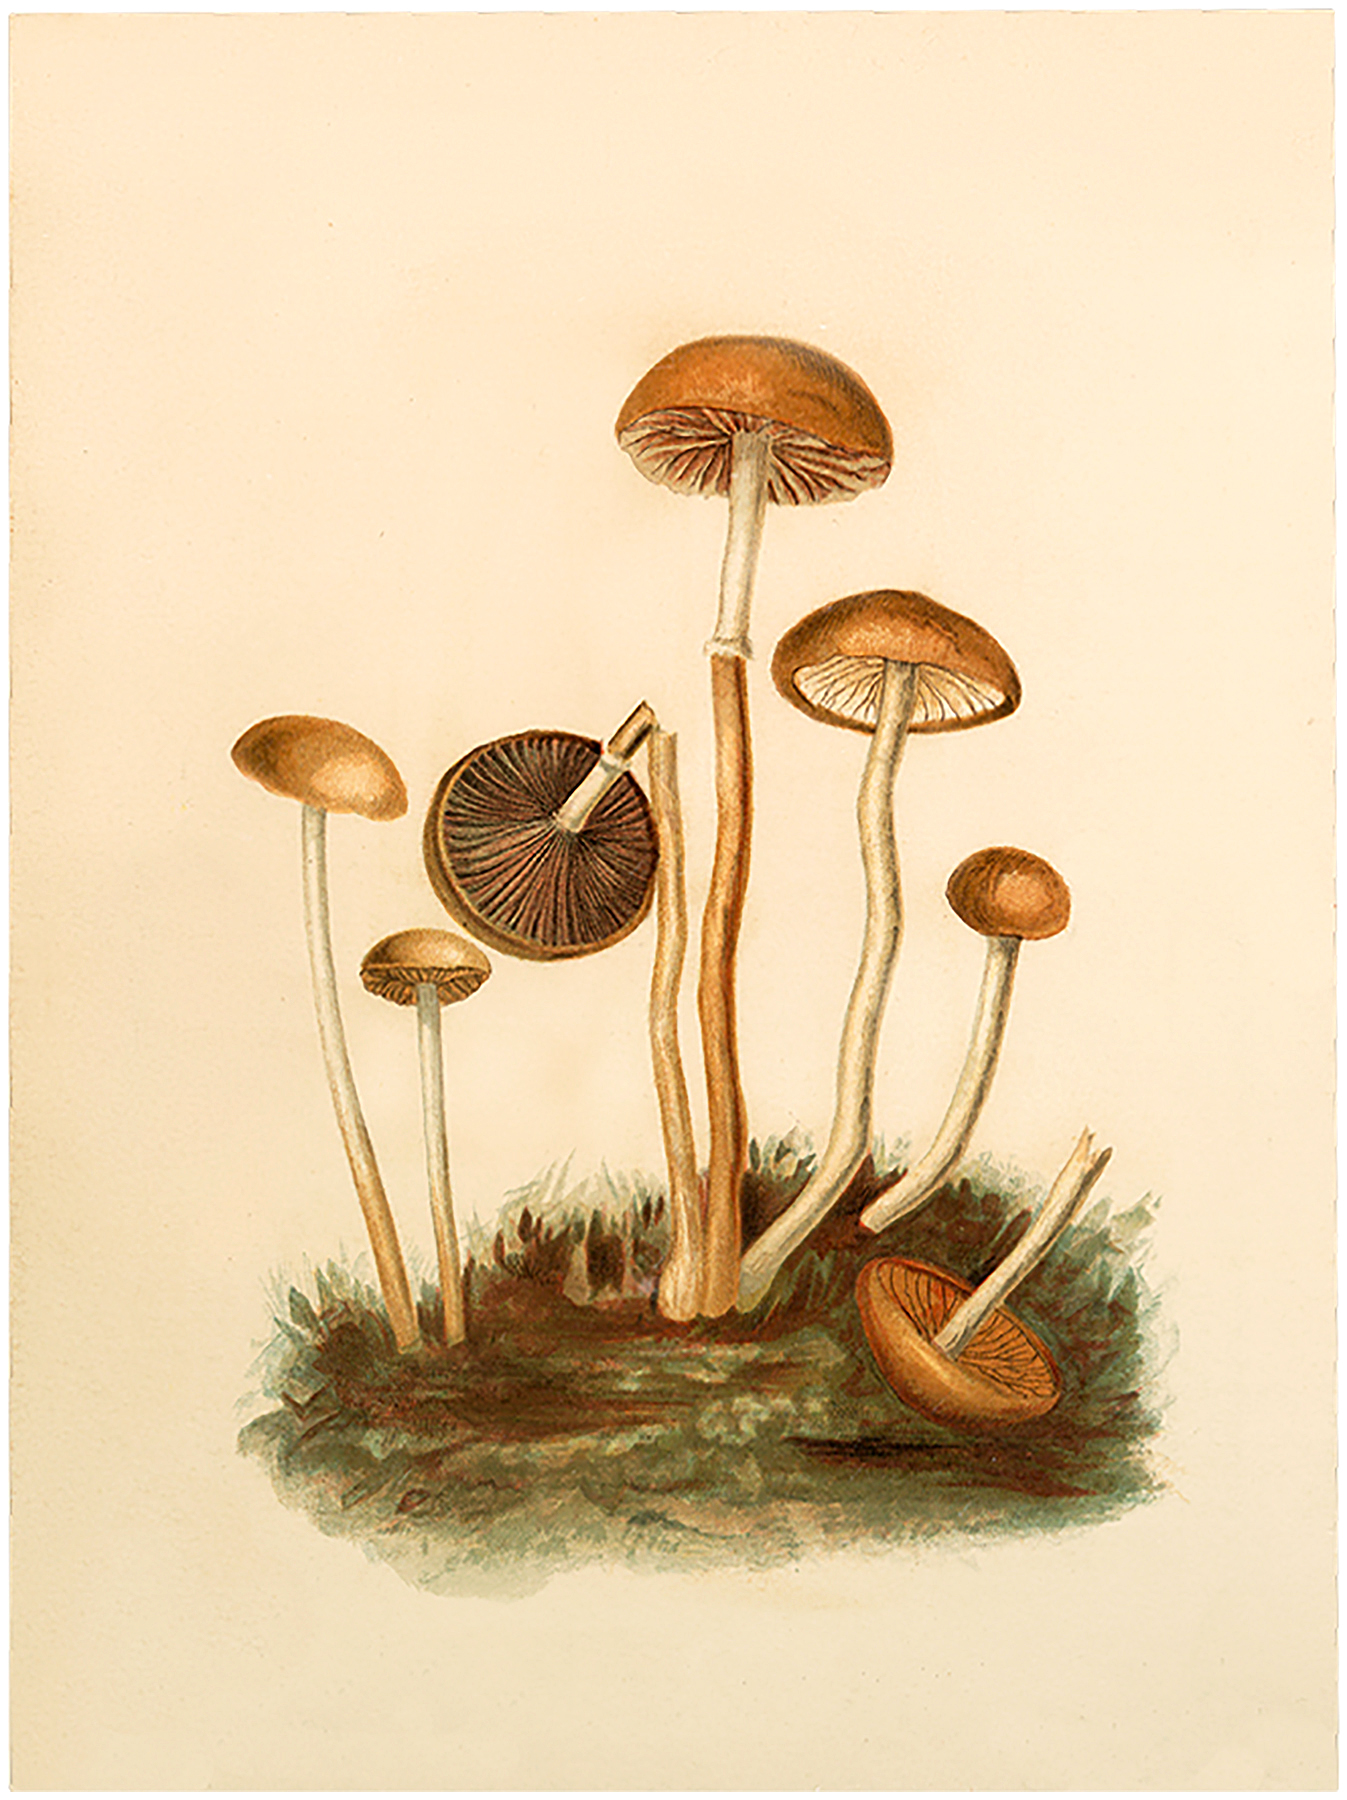 image transparent  mushroom images the. Mushrooms clipart vintage.